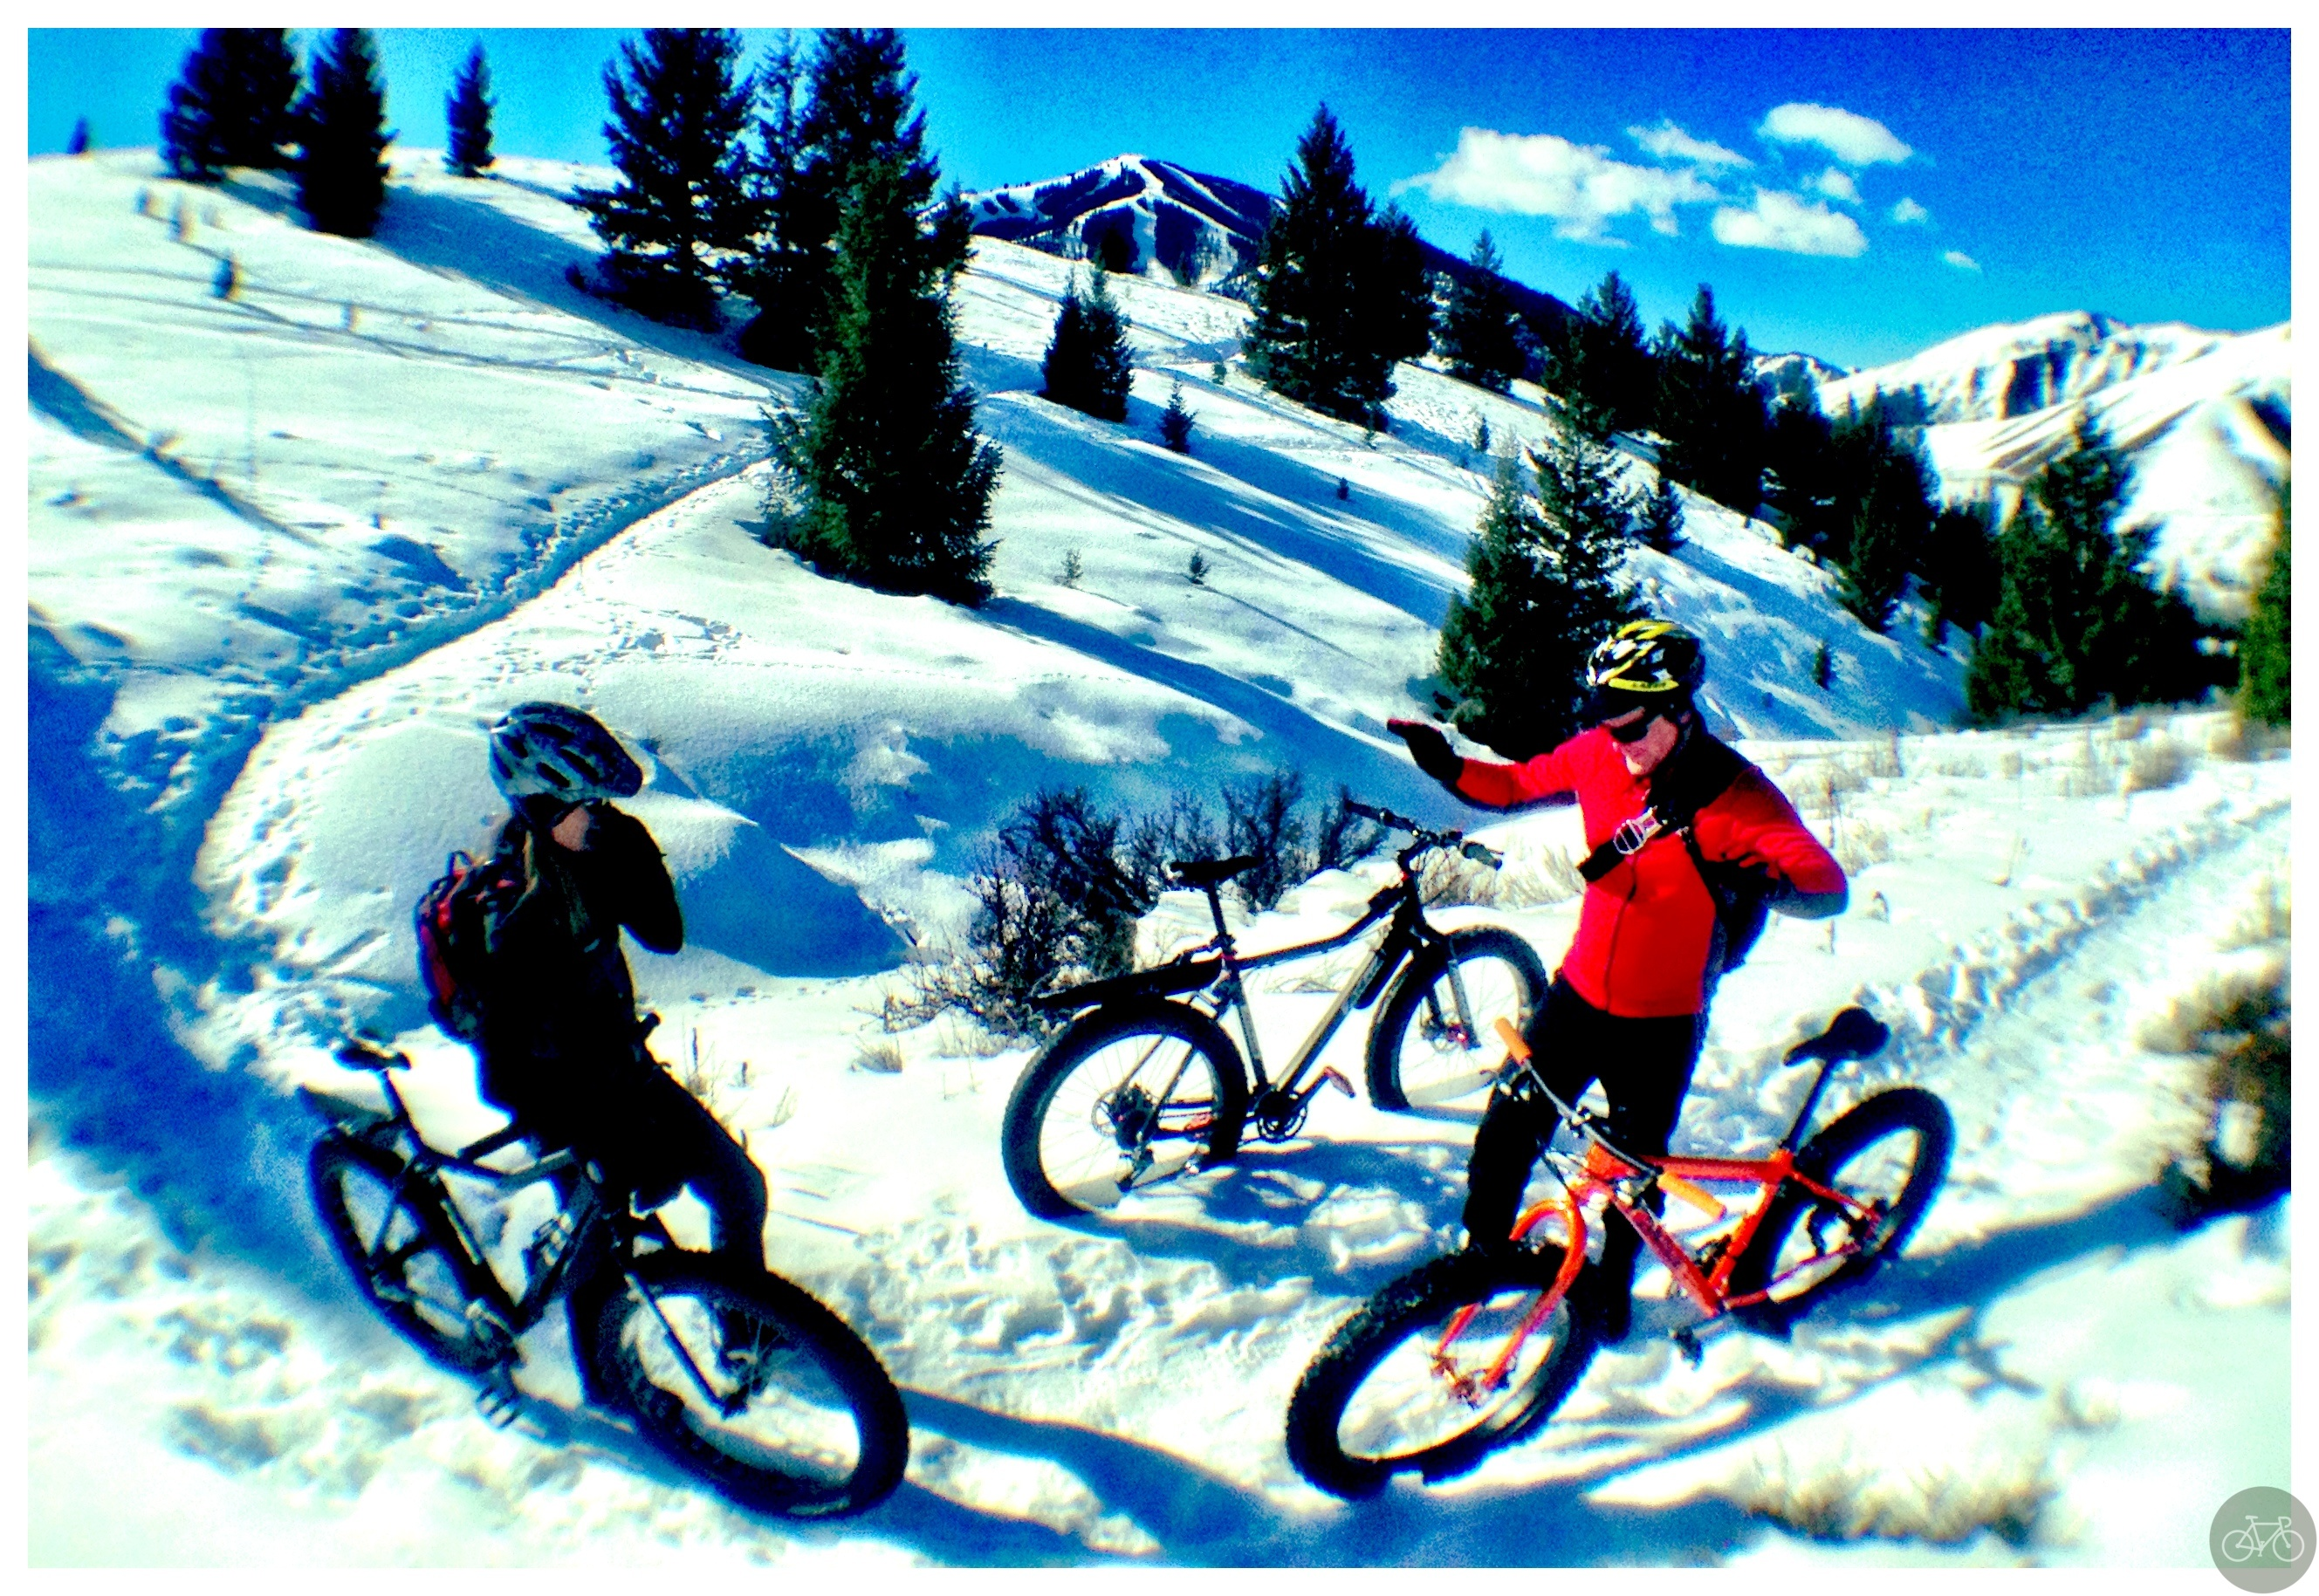 Finding a Fat Bike Flow